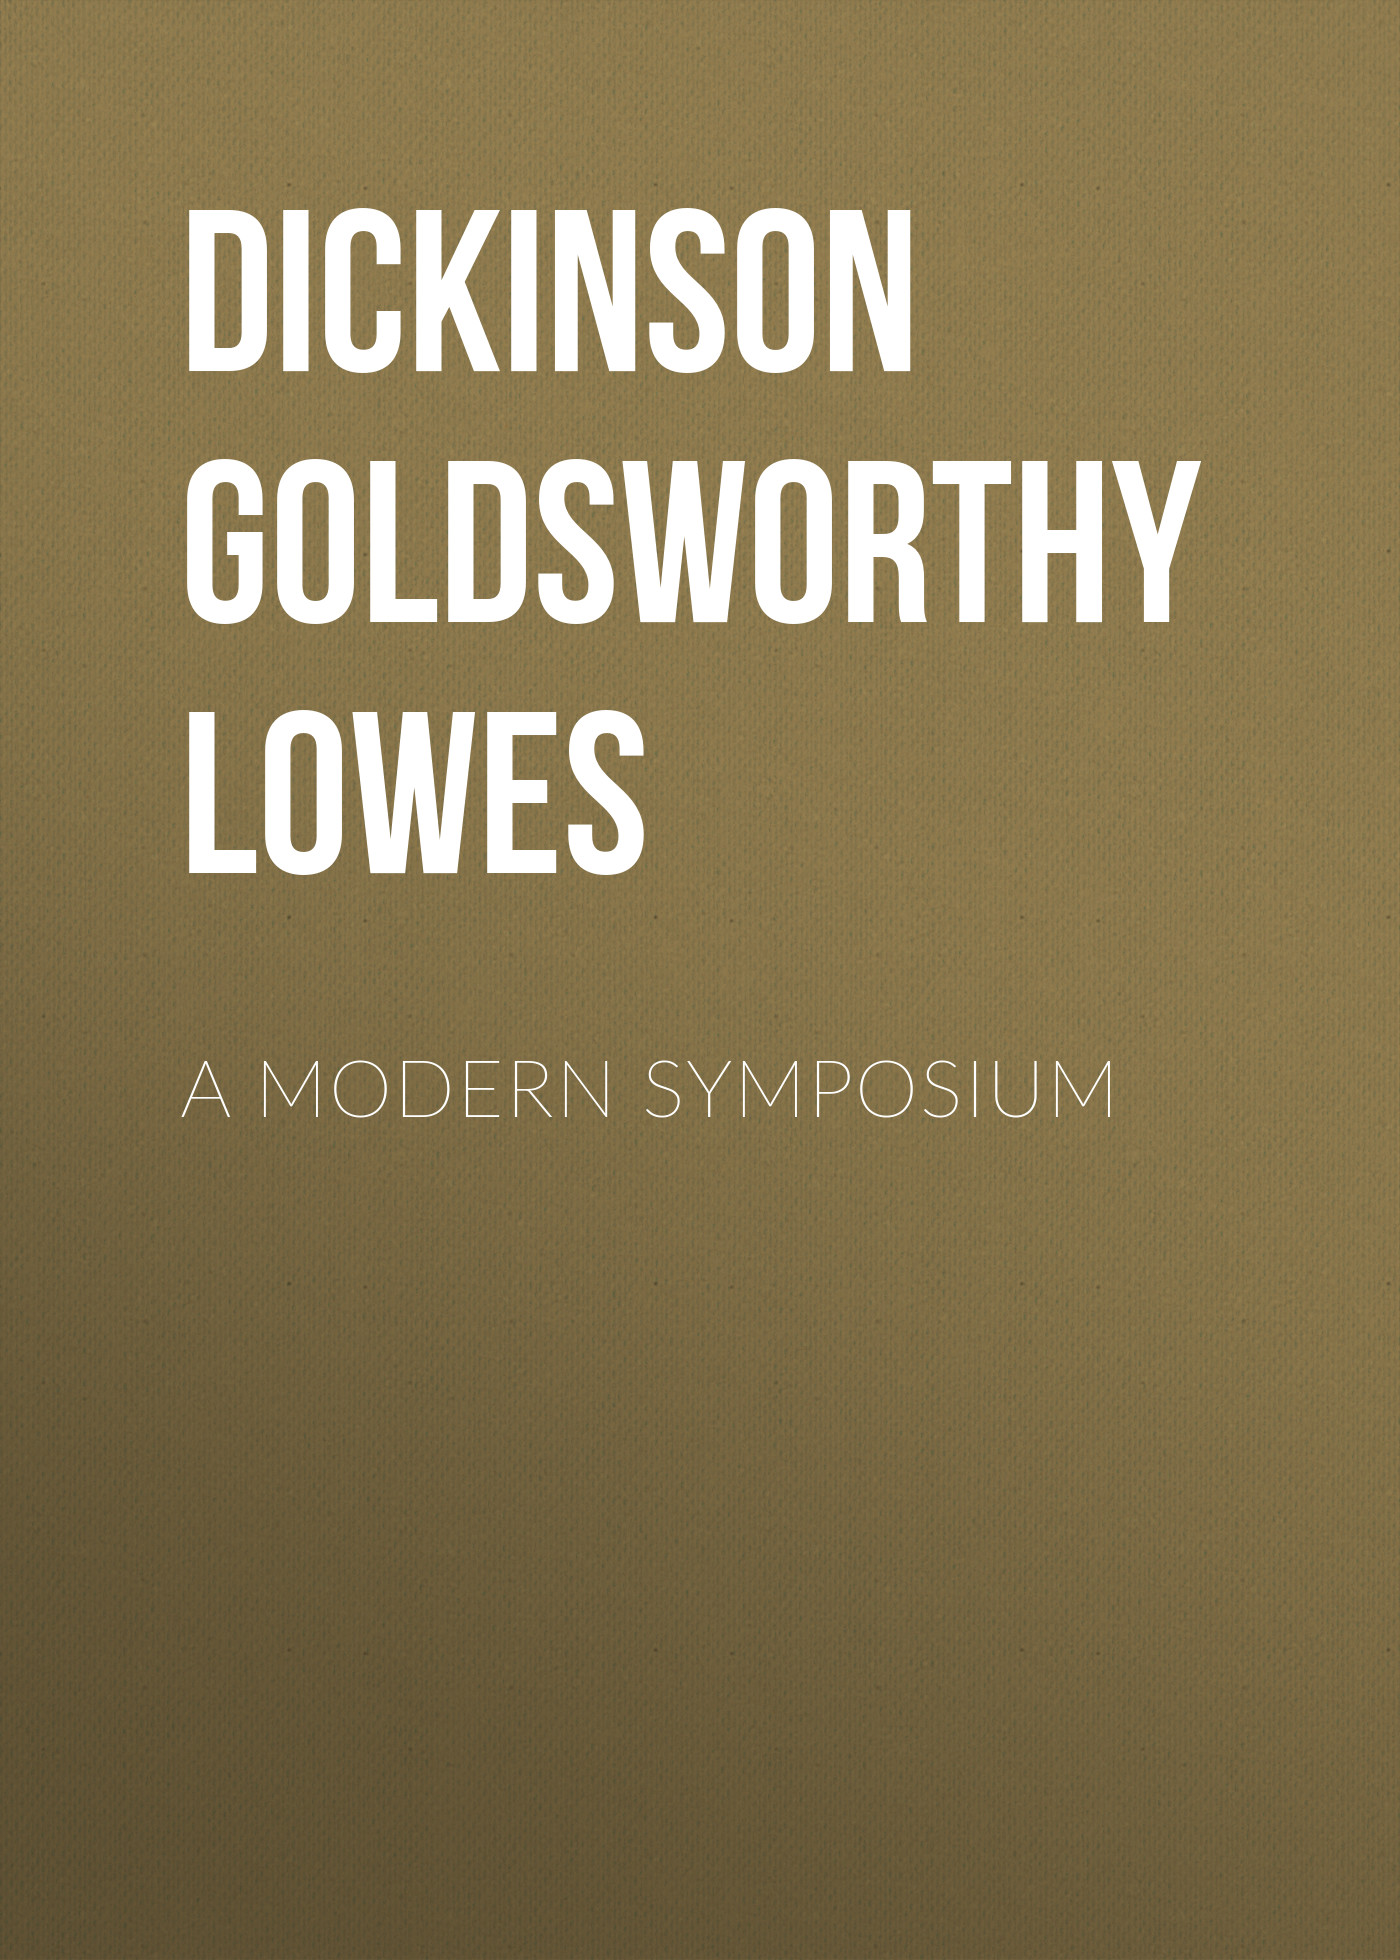 Dickinson Goldsworthy Lowes A Modern Symposium